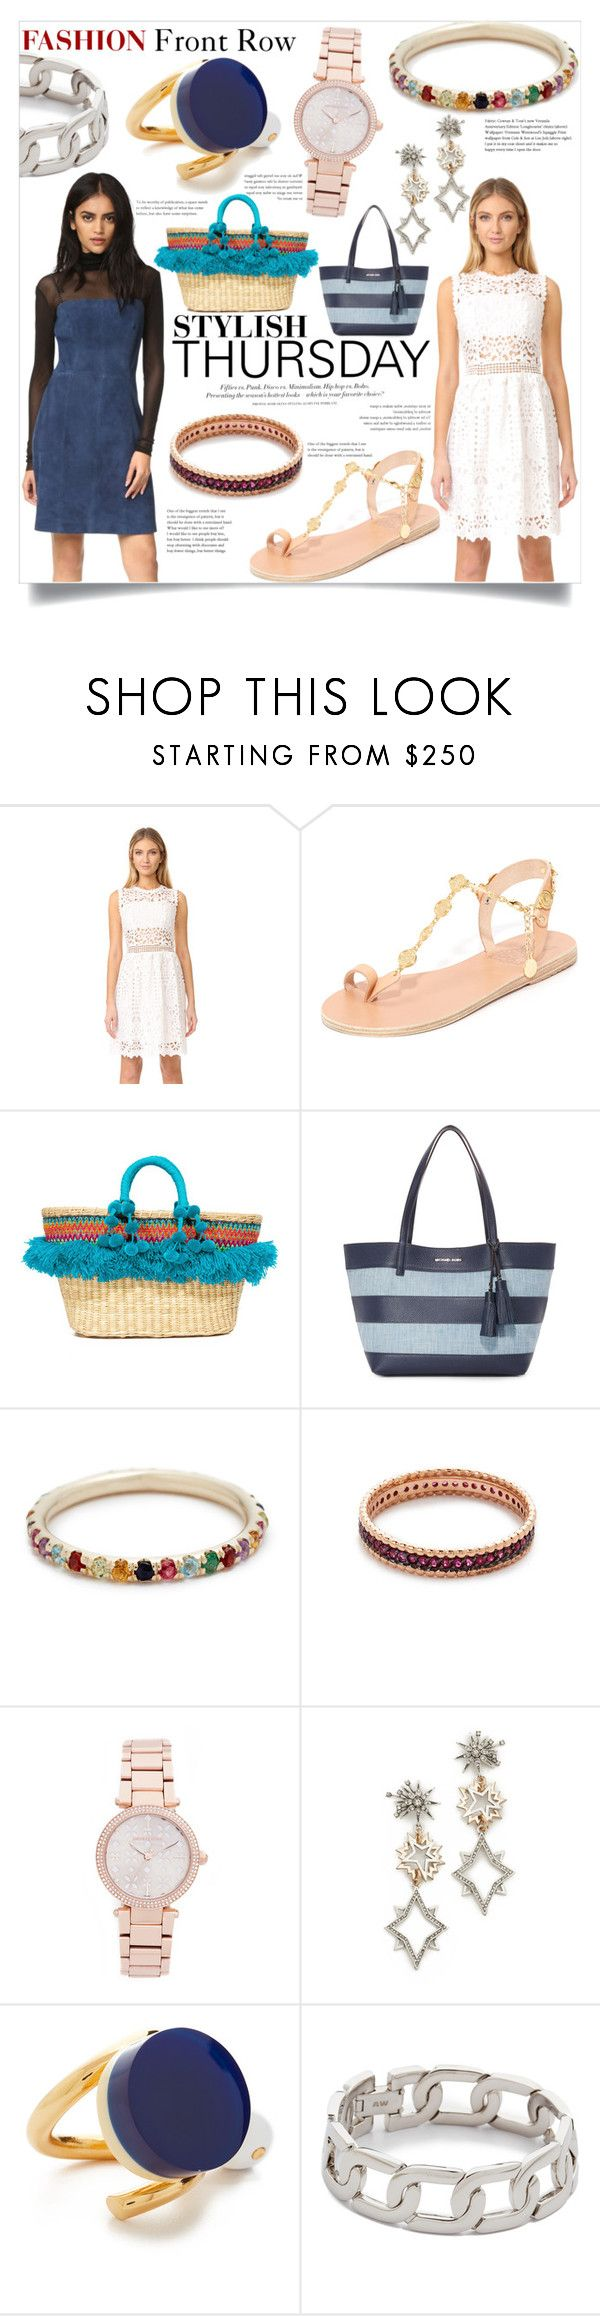 """Spring Fashion - Stylish Thusday"" by bonnielindsay on Polyvore featuring Ministry of Style, Ancient Greek Sandals, H&M, Nannacay, MICHAEL Michael Kors, Ariel Gordon, Kismet by Milka, Michael Kors, Lulu Frost and Marni"